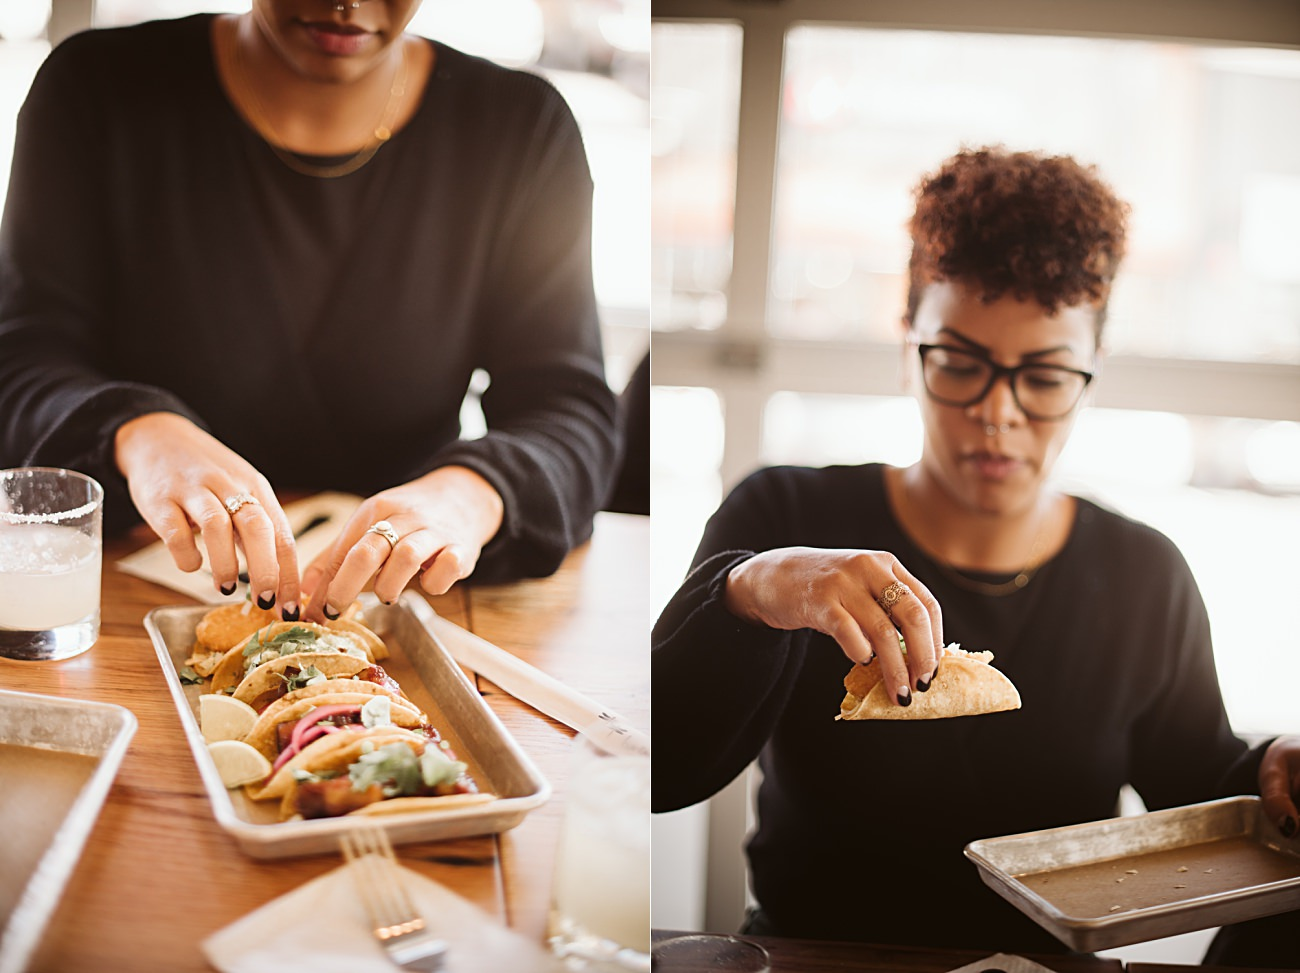 Branding Session with Tacos, Madison Wisconsin Branding Photographer